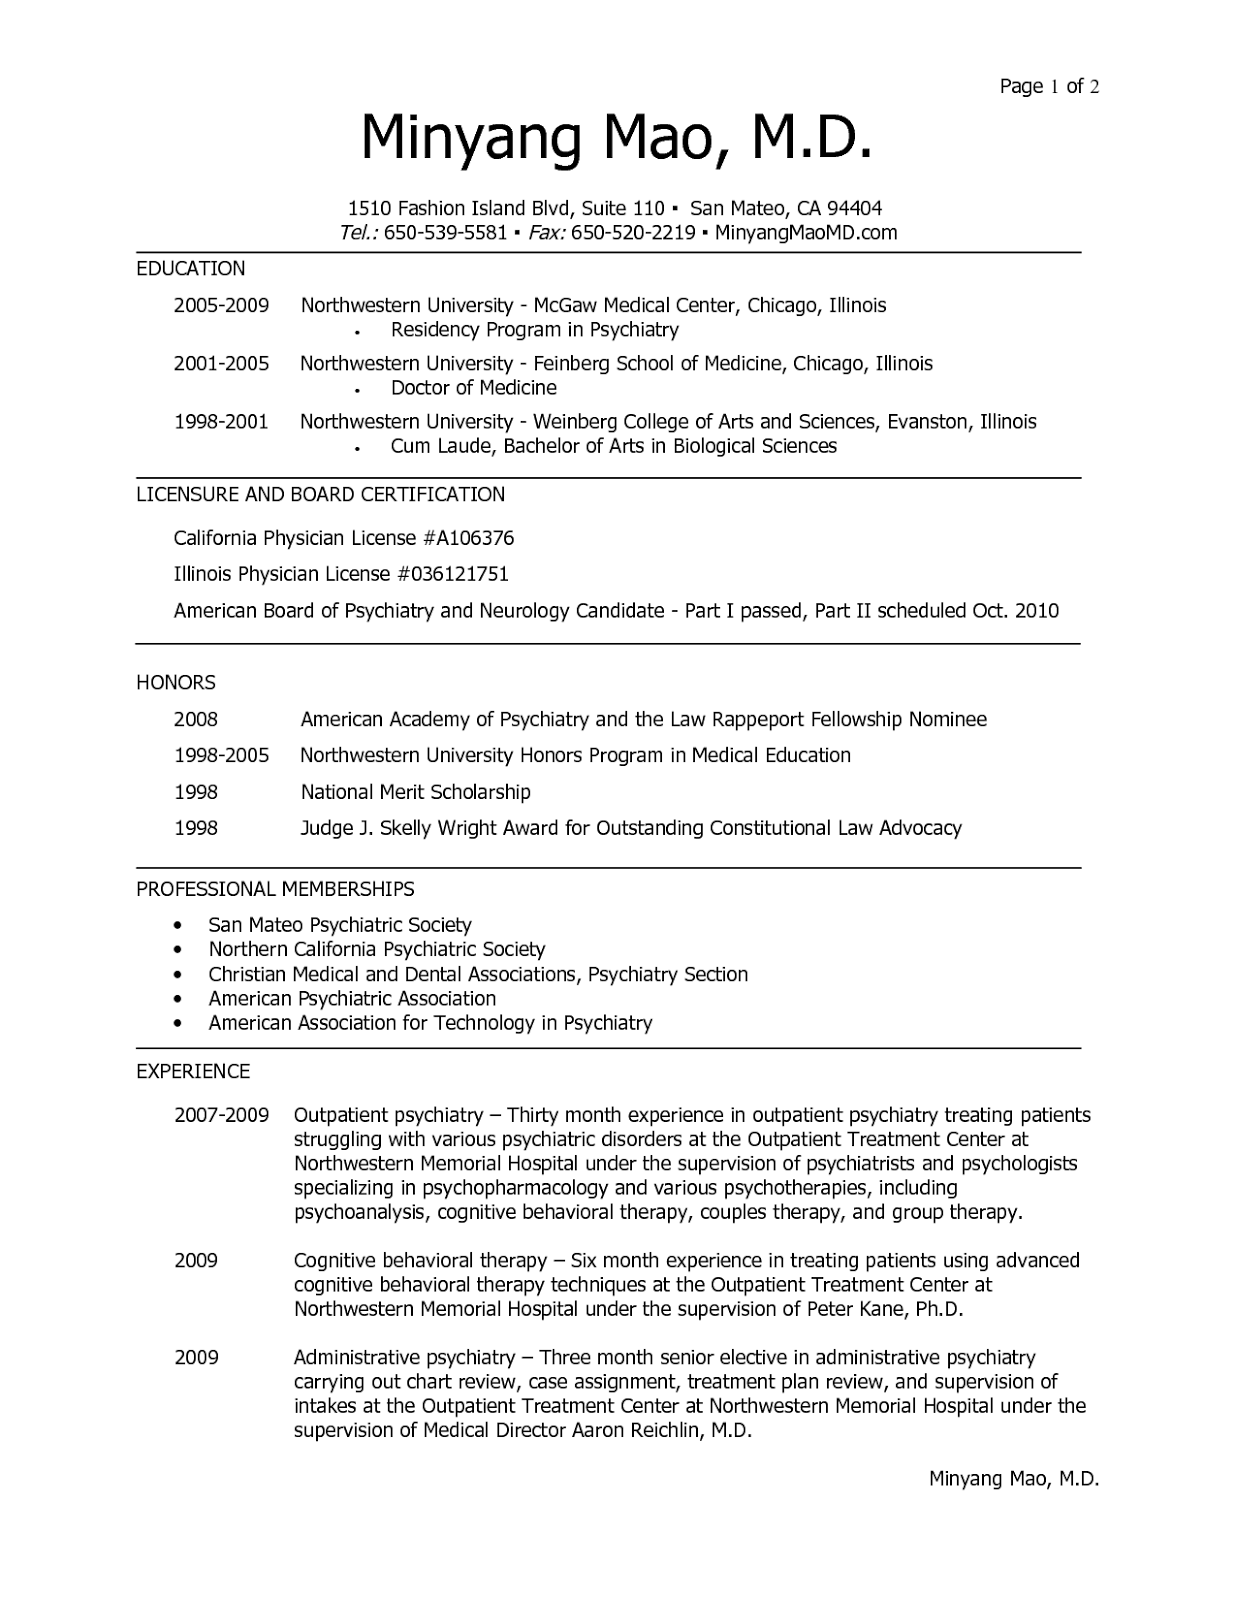 resume format examples for students resume format sample resume for college student medical student resume